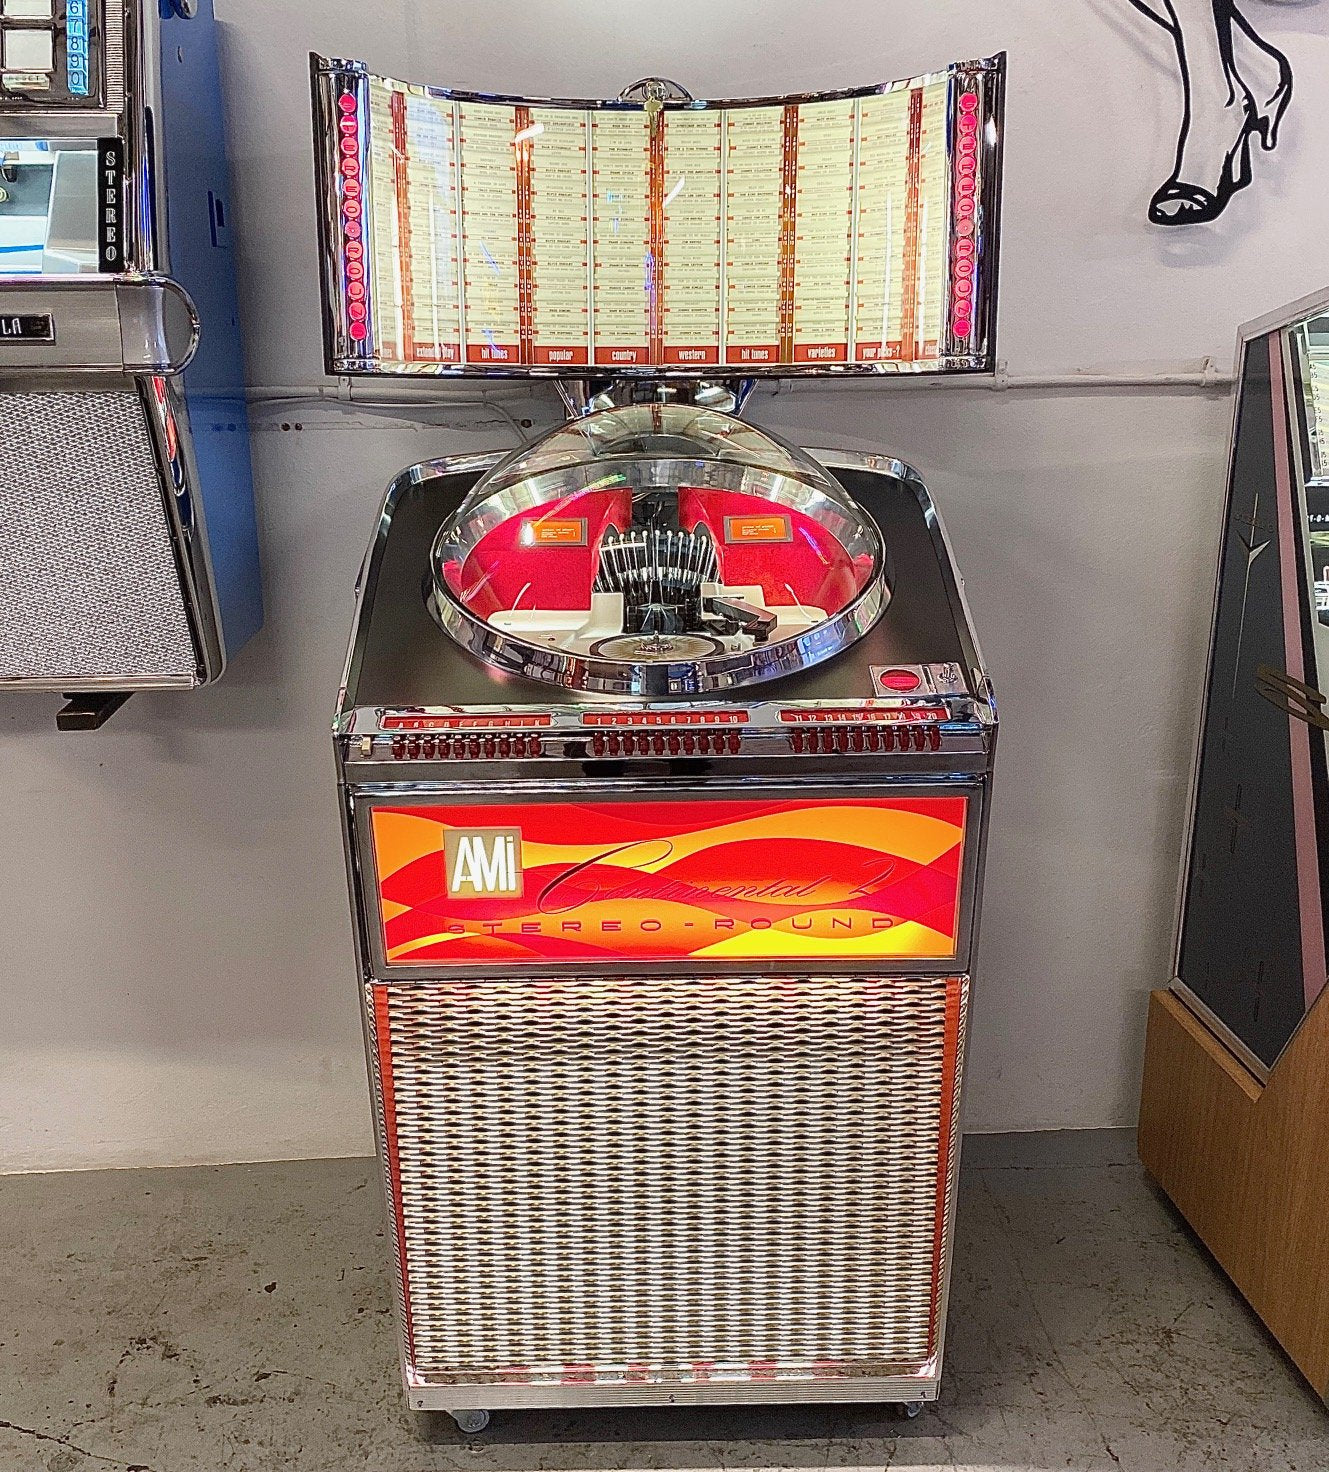 1962 AMI II Continental 200 Vinyl Jukebox